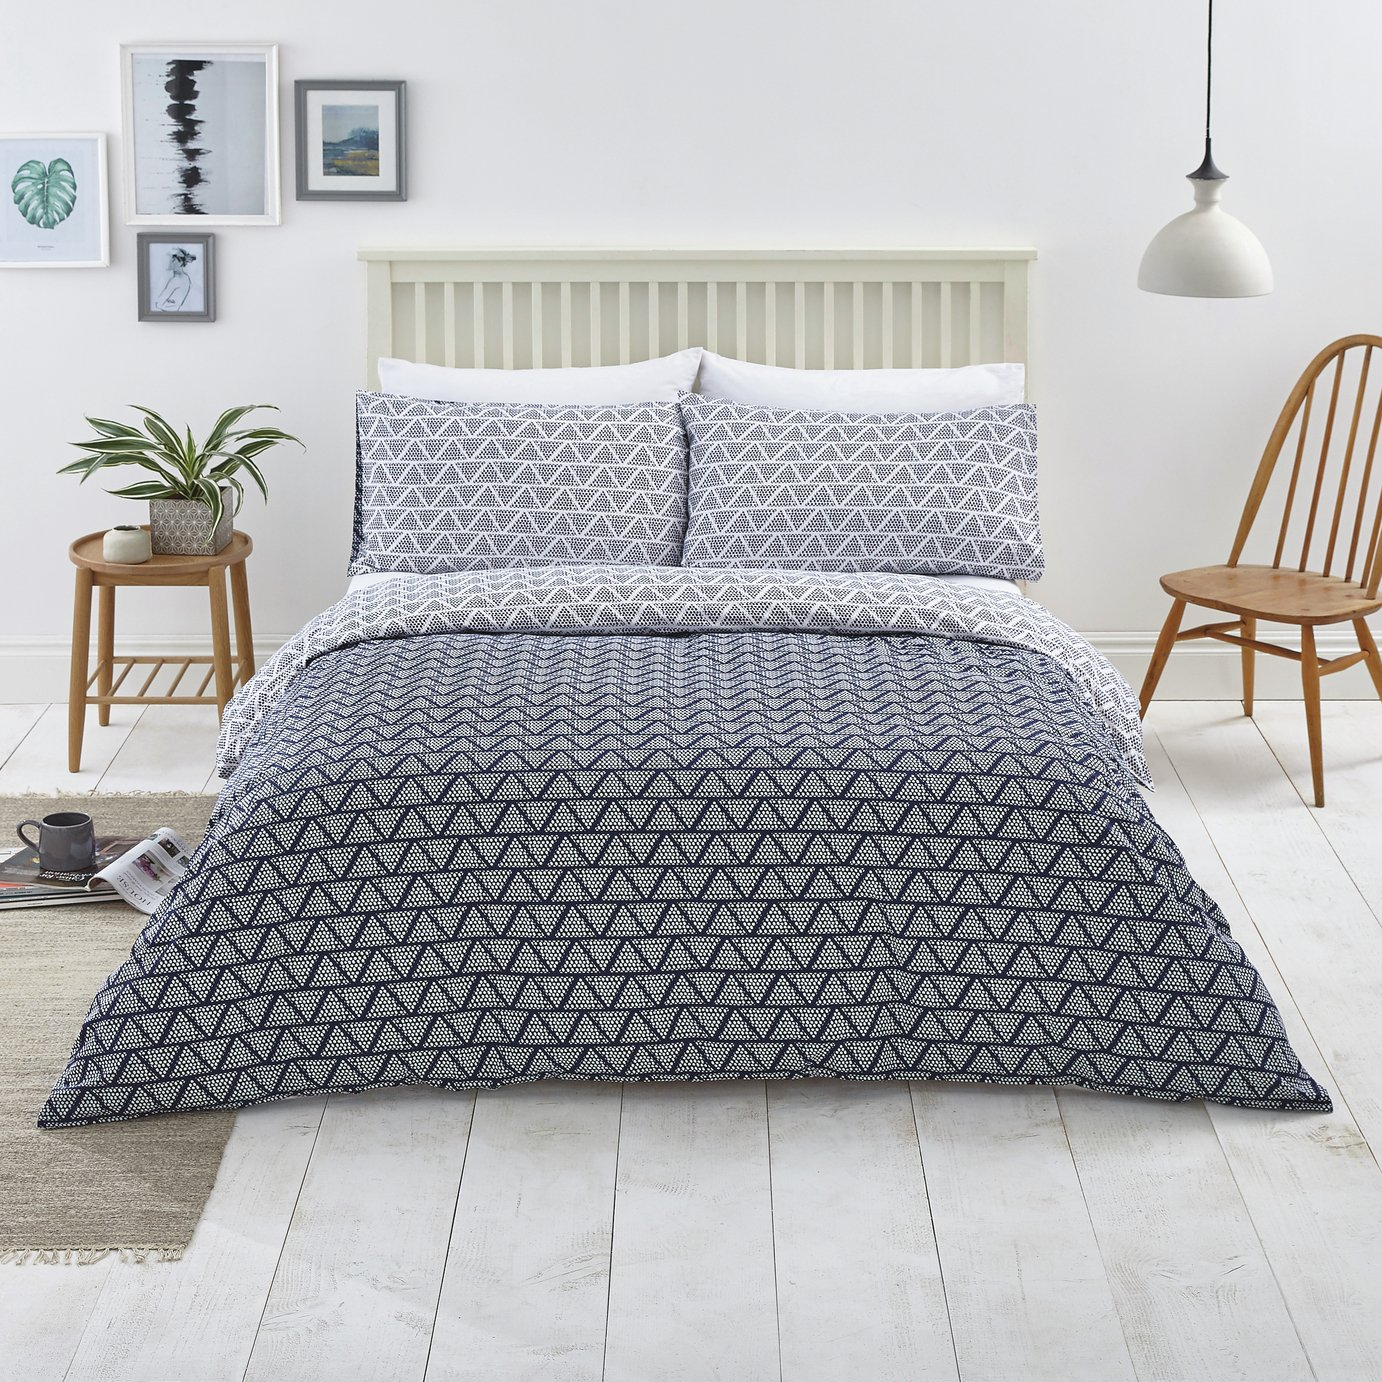 Argos Home Navy Zig Zag and Dot Bedding Set - Kingsize